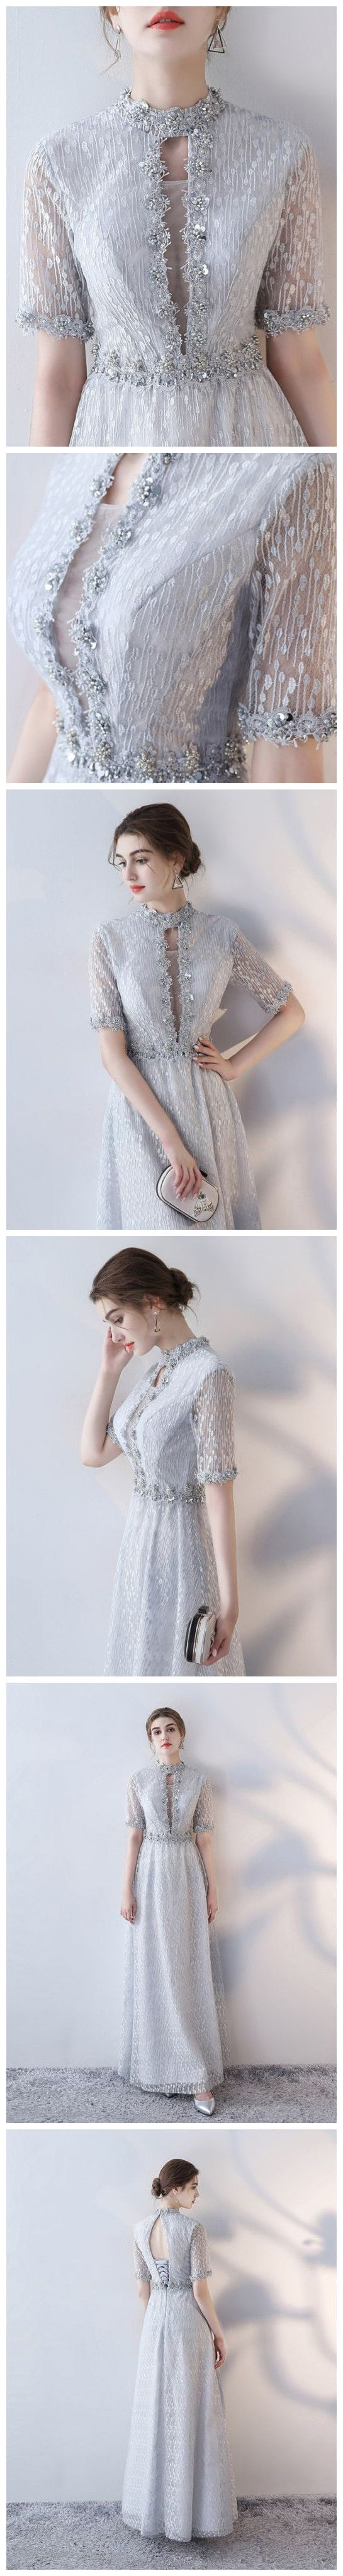 CHIC A-LINE HIGH NECK SILVER LACE MODEST LONG PROM DRESS  EVENING DRESS AM561 #fashion #style #long #prom #party #evening #beauty #chic #love #bridal #promdress #promdresslong #longpromdress #eveningdress #promdresses #silver